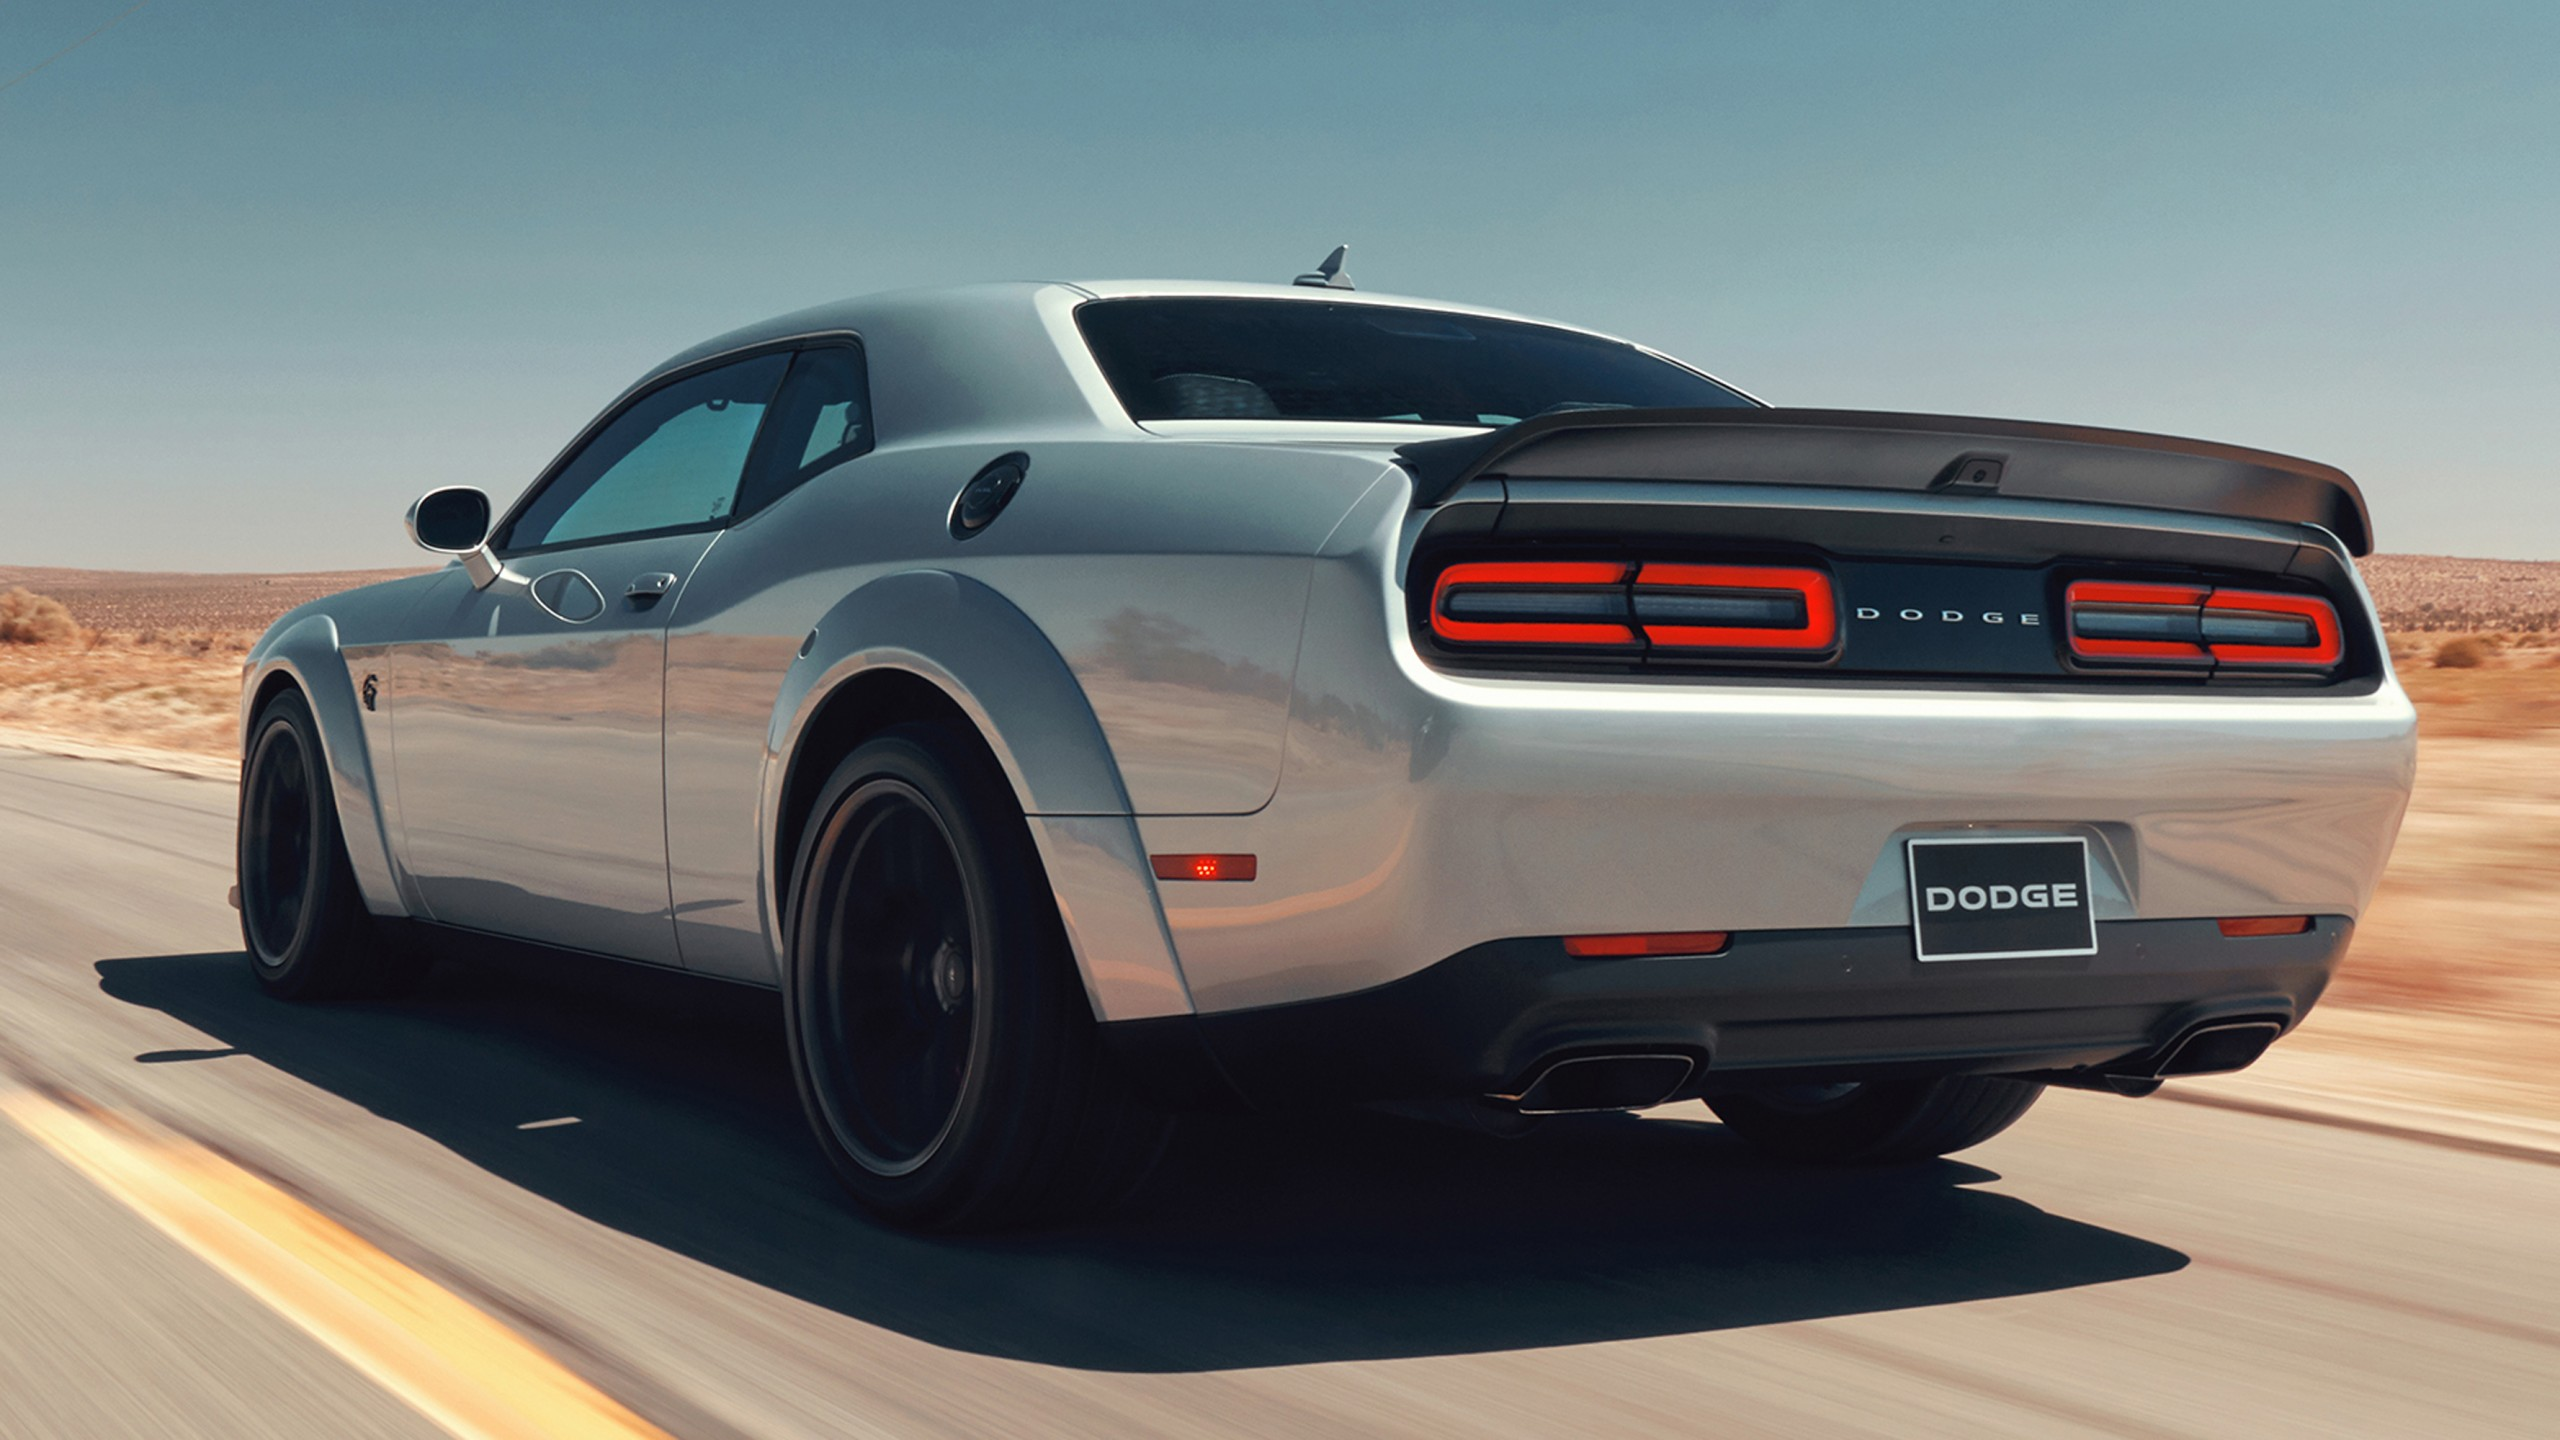 Wallpaper Dodge Challenger SRT Hellcat 2019 Cars 4K Bikes